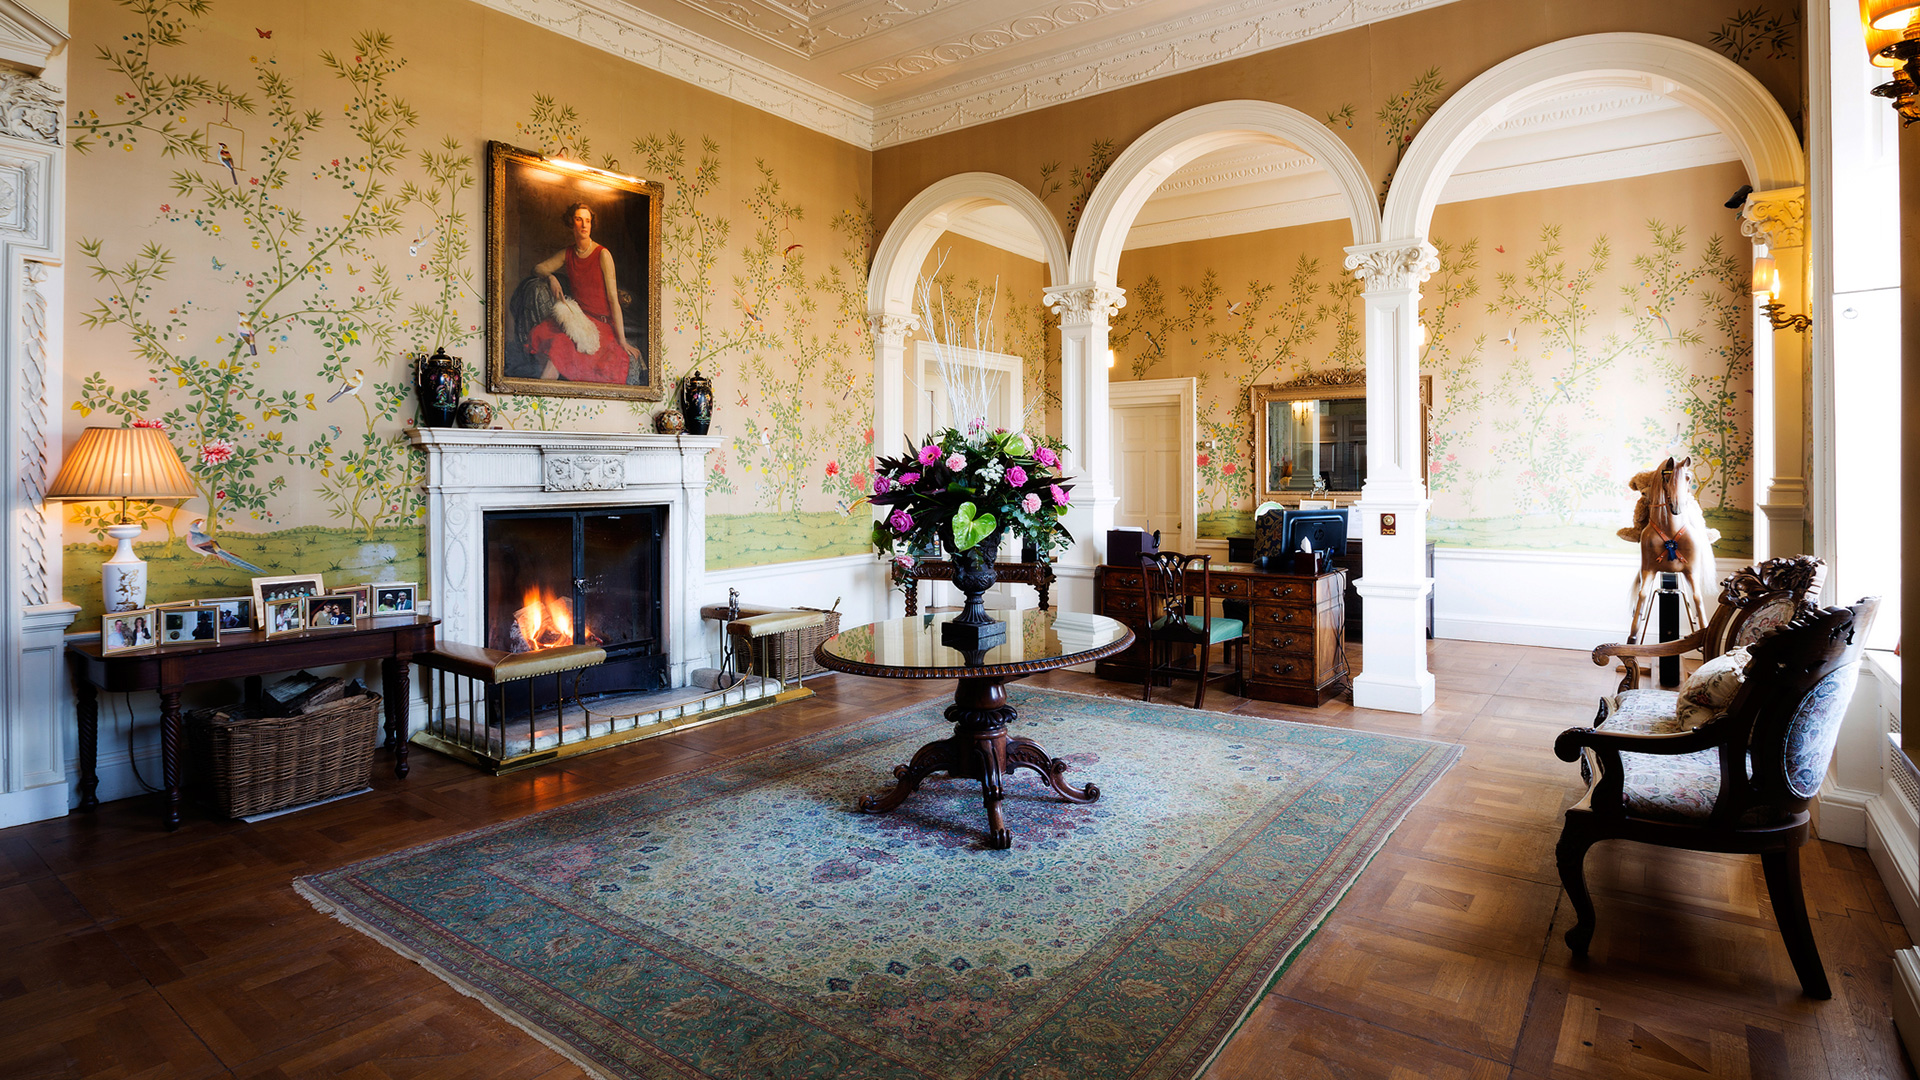 Watch Old Park Hall hotel: the country pad we're crushing on video